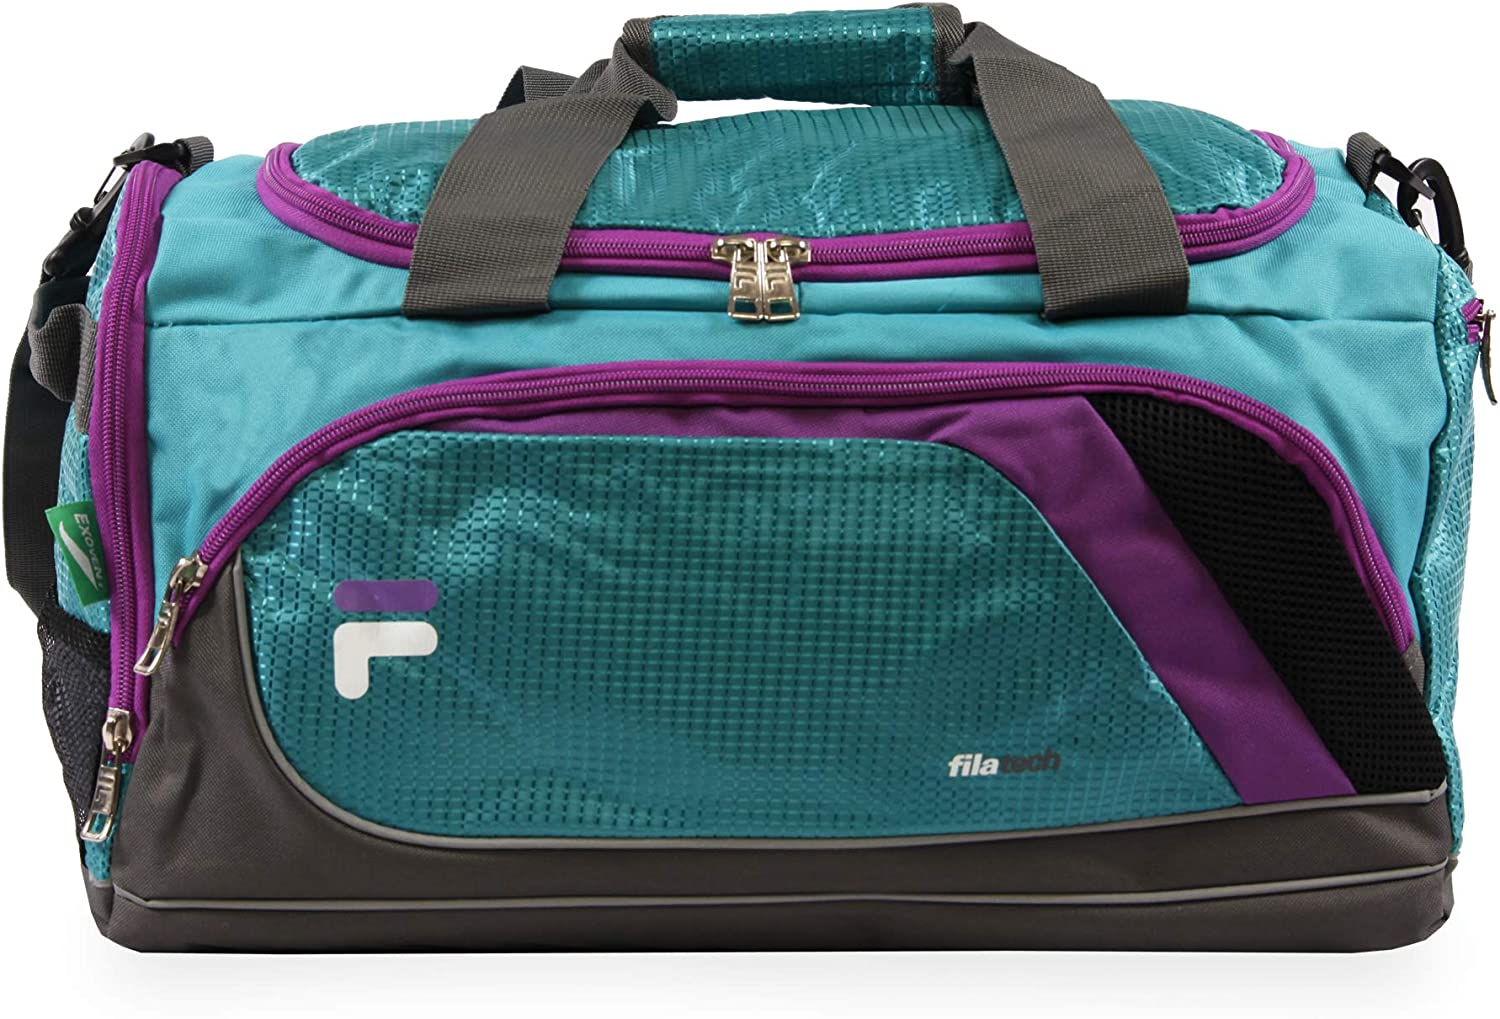 Fila Vorteil Small Travel Gym Sport Duffel Bag, blaugrün (blau) - FL-SD-3619